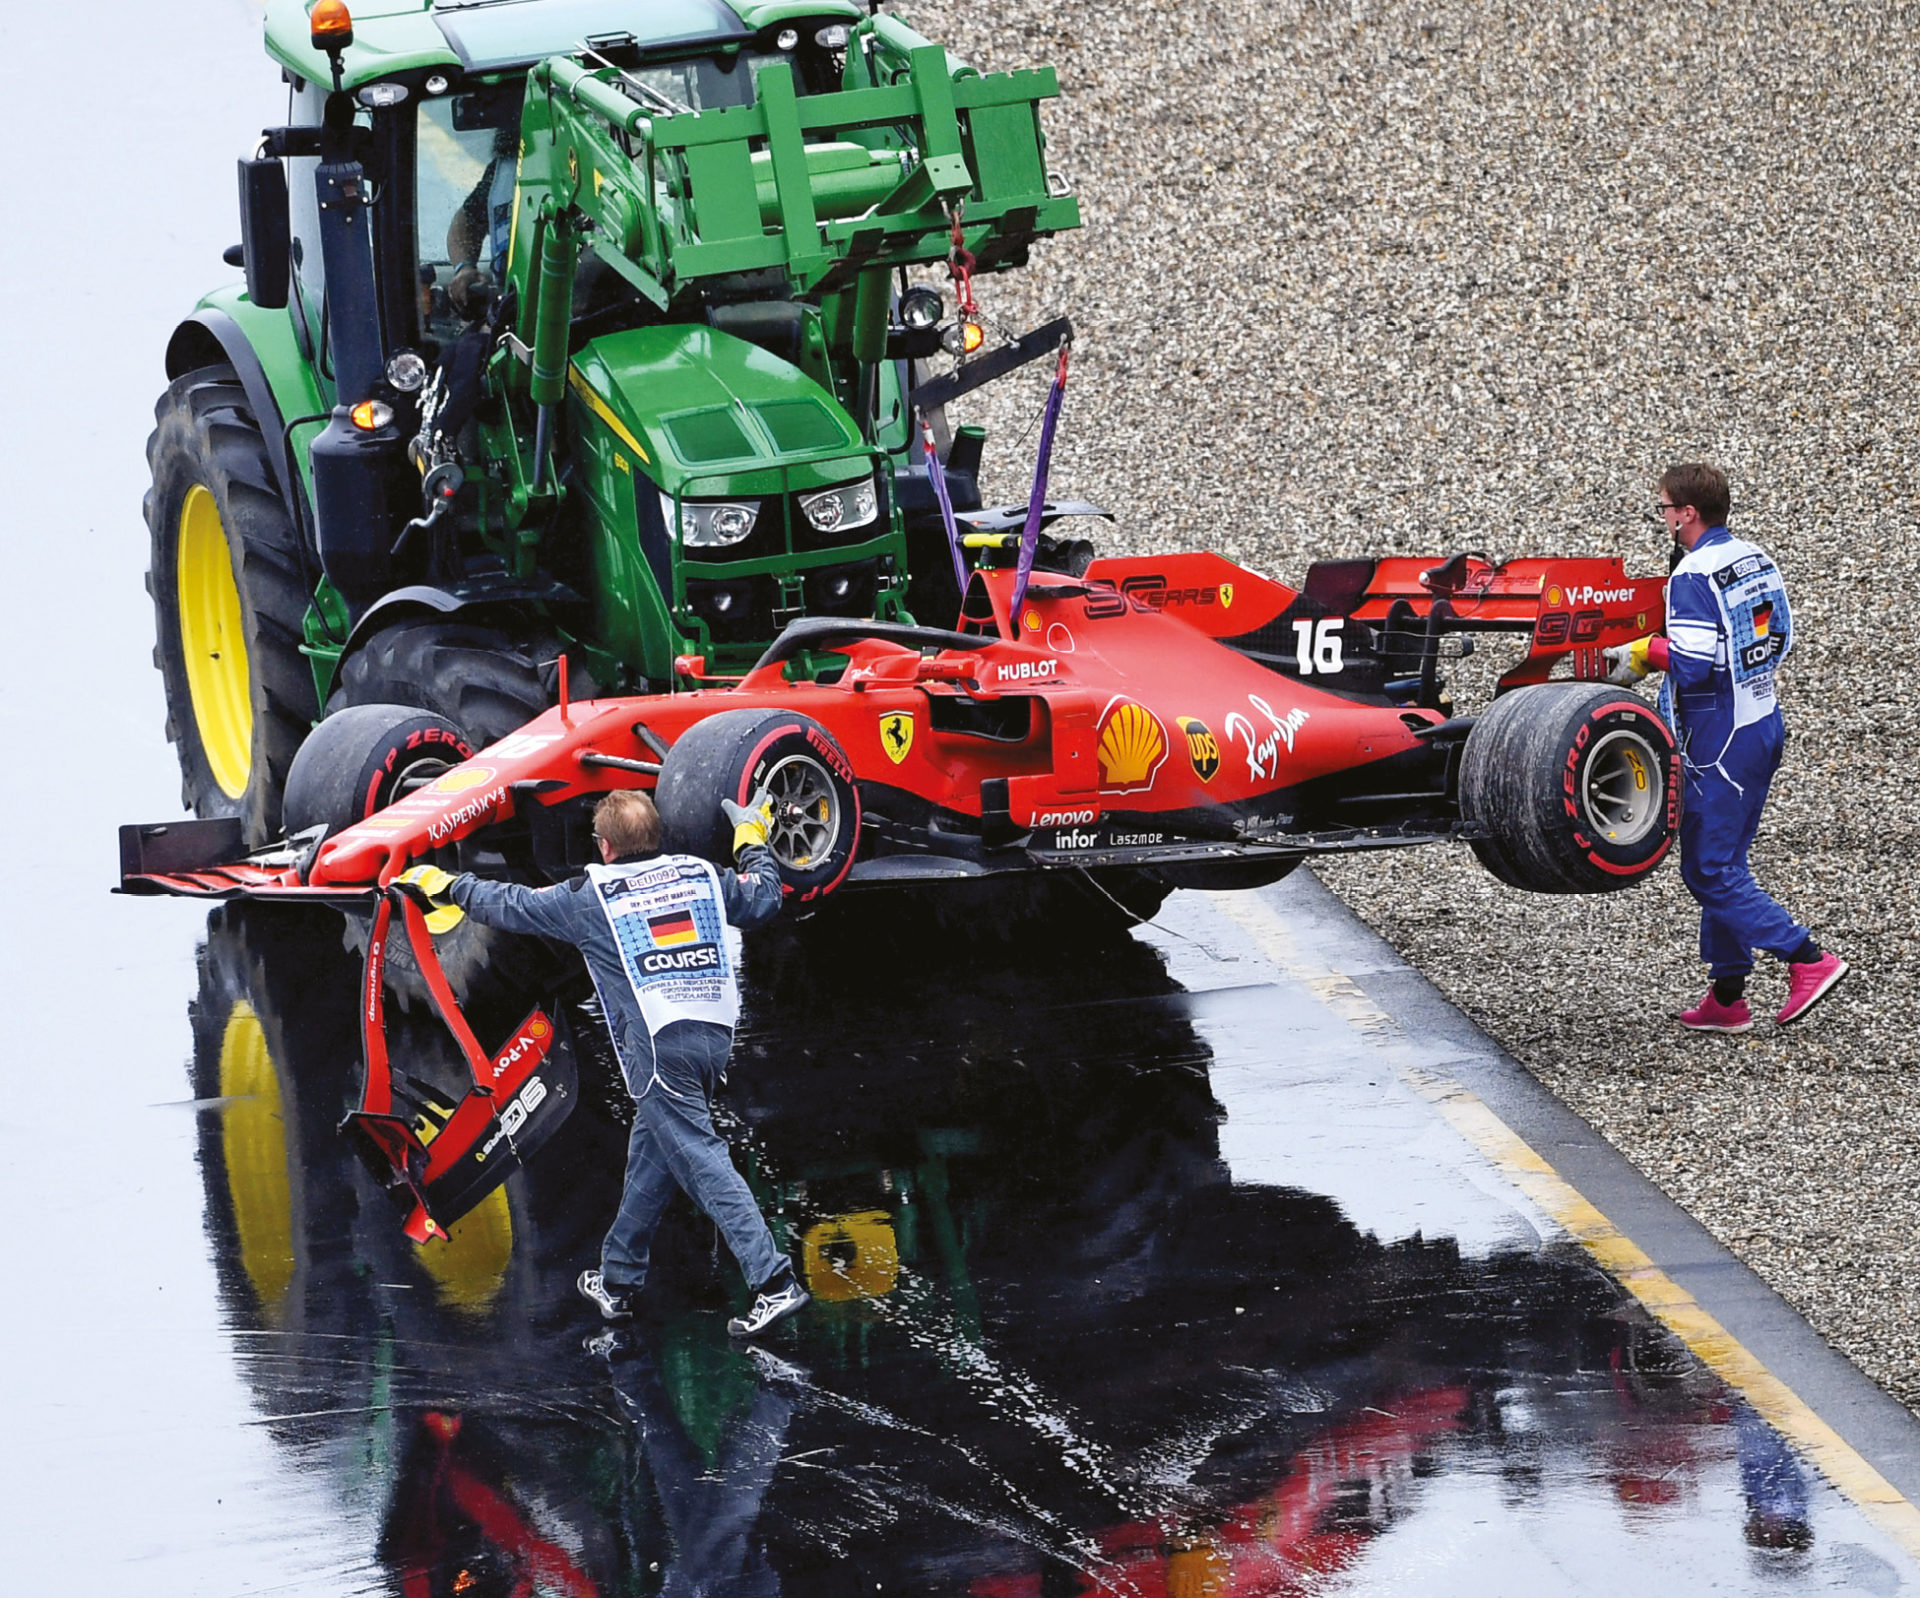 Leclerc throwing it off in Germany was one of Ferrari's slip ups that gave ground to Mercedes and Hamilton